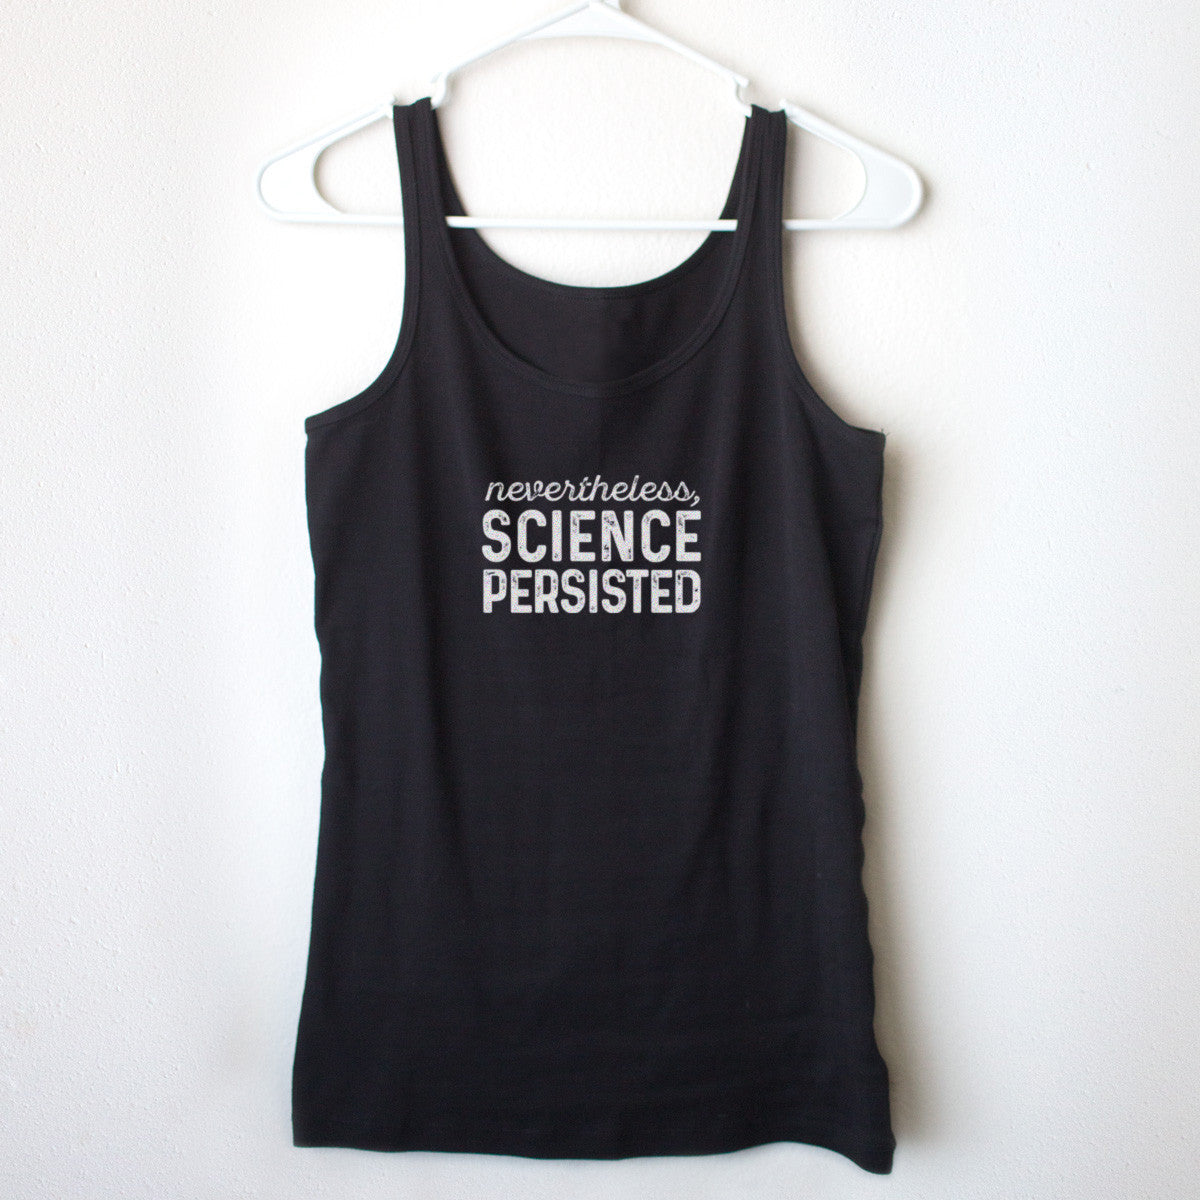 Nevertheless, Science Persisted Ladies' Tank